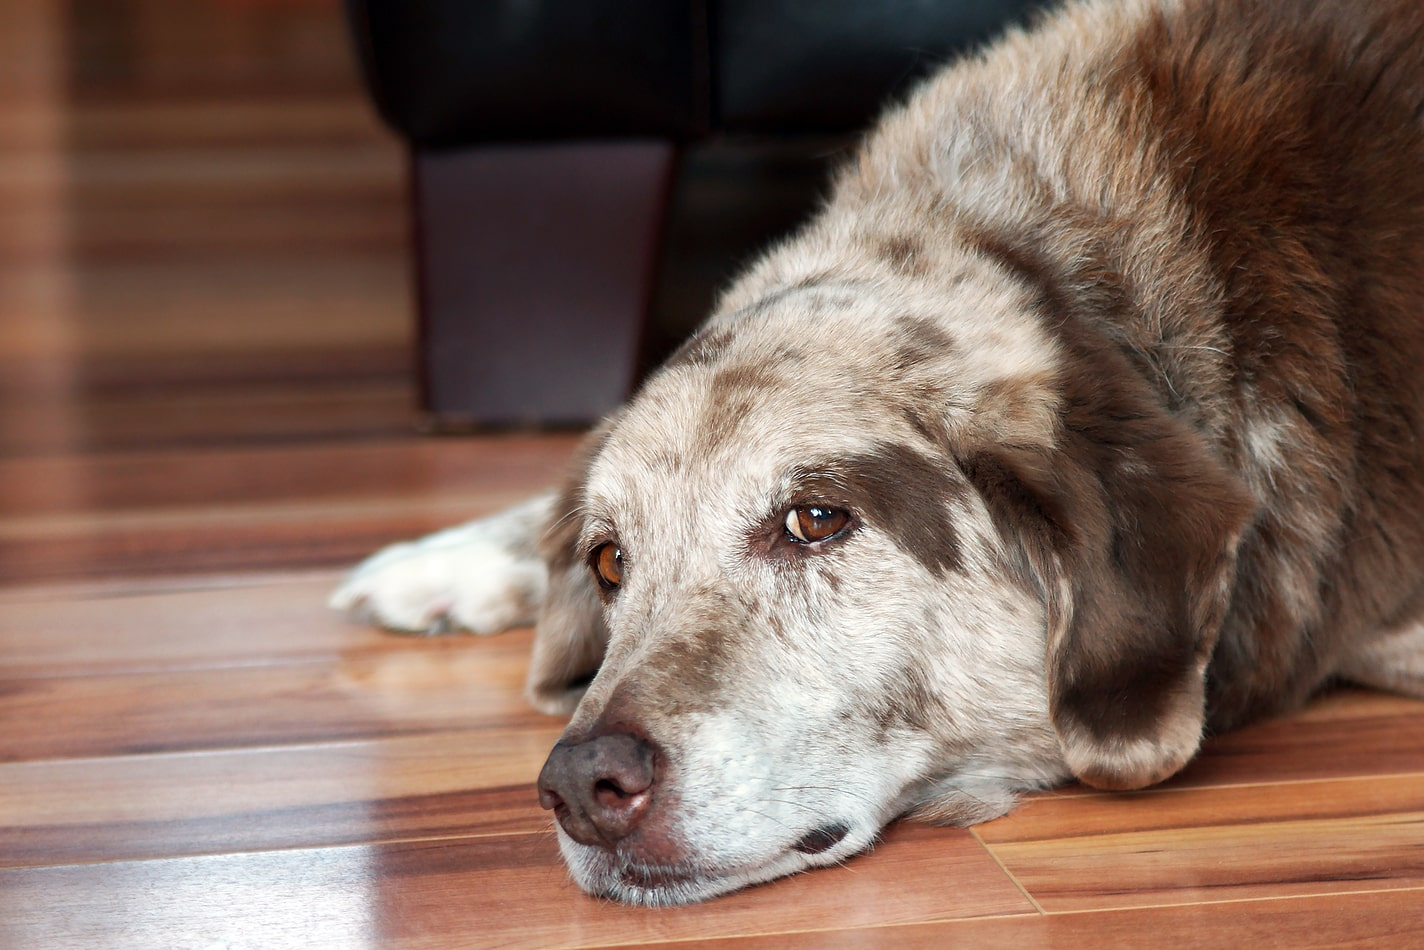 Older dog lying on wood floor.